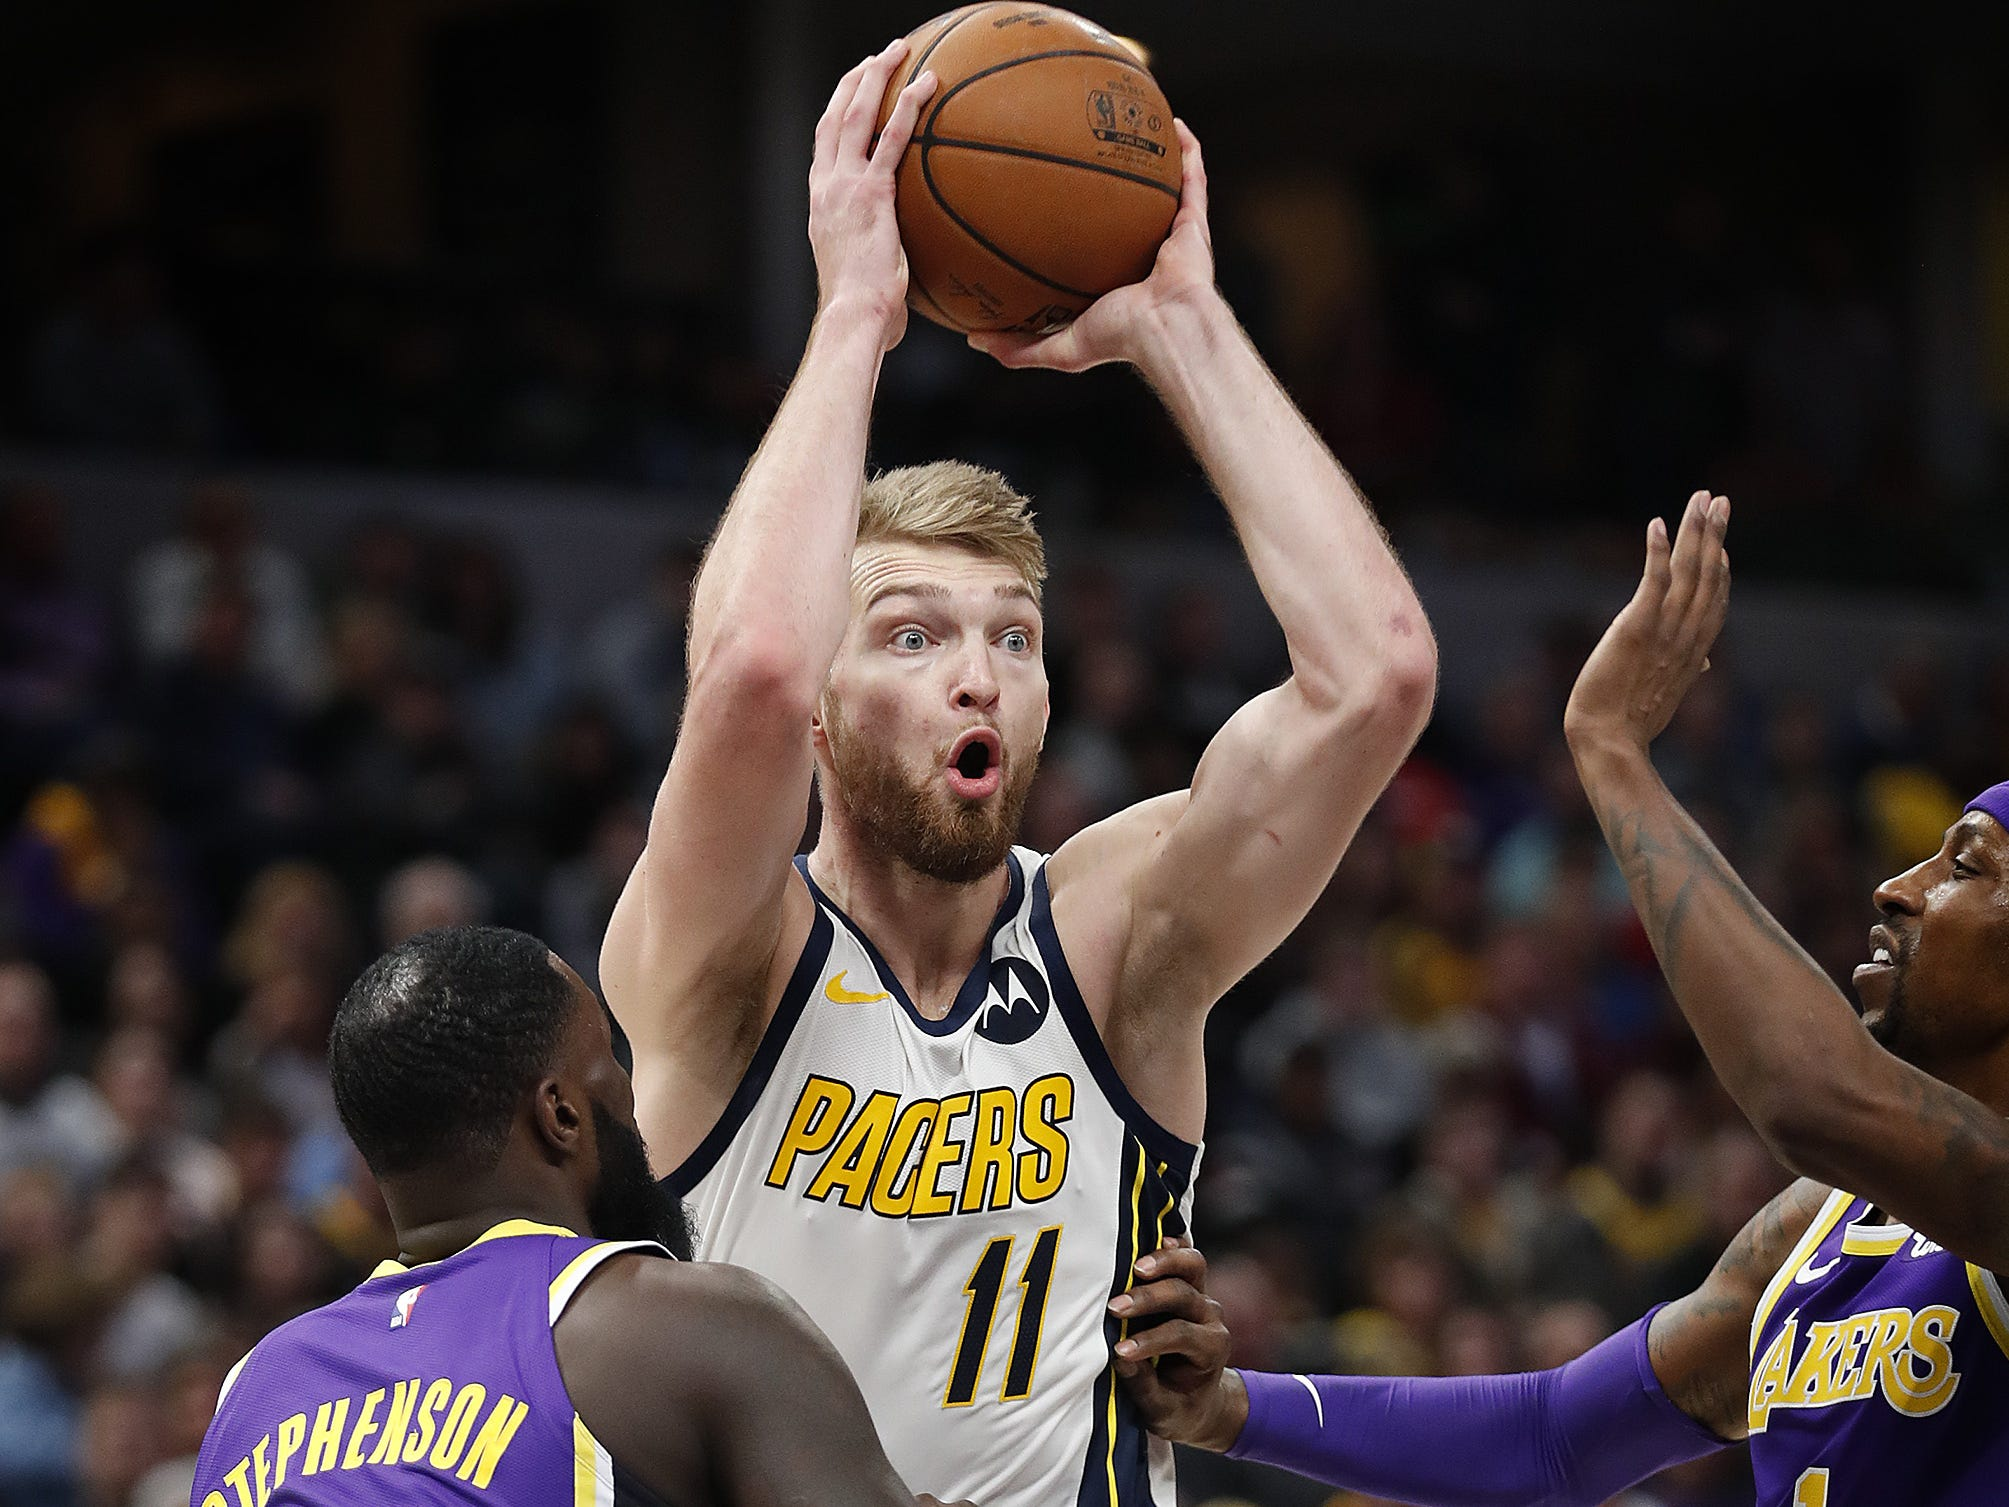 Indiana Pacers forward Domantas Sabonis (11) passes the ball over Los Angeles Lakers guard Lance Stephenson (6) in the second half of their game at Bankers Life Fieldhouse on Tuesday, Feb. 5, 2019.